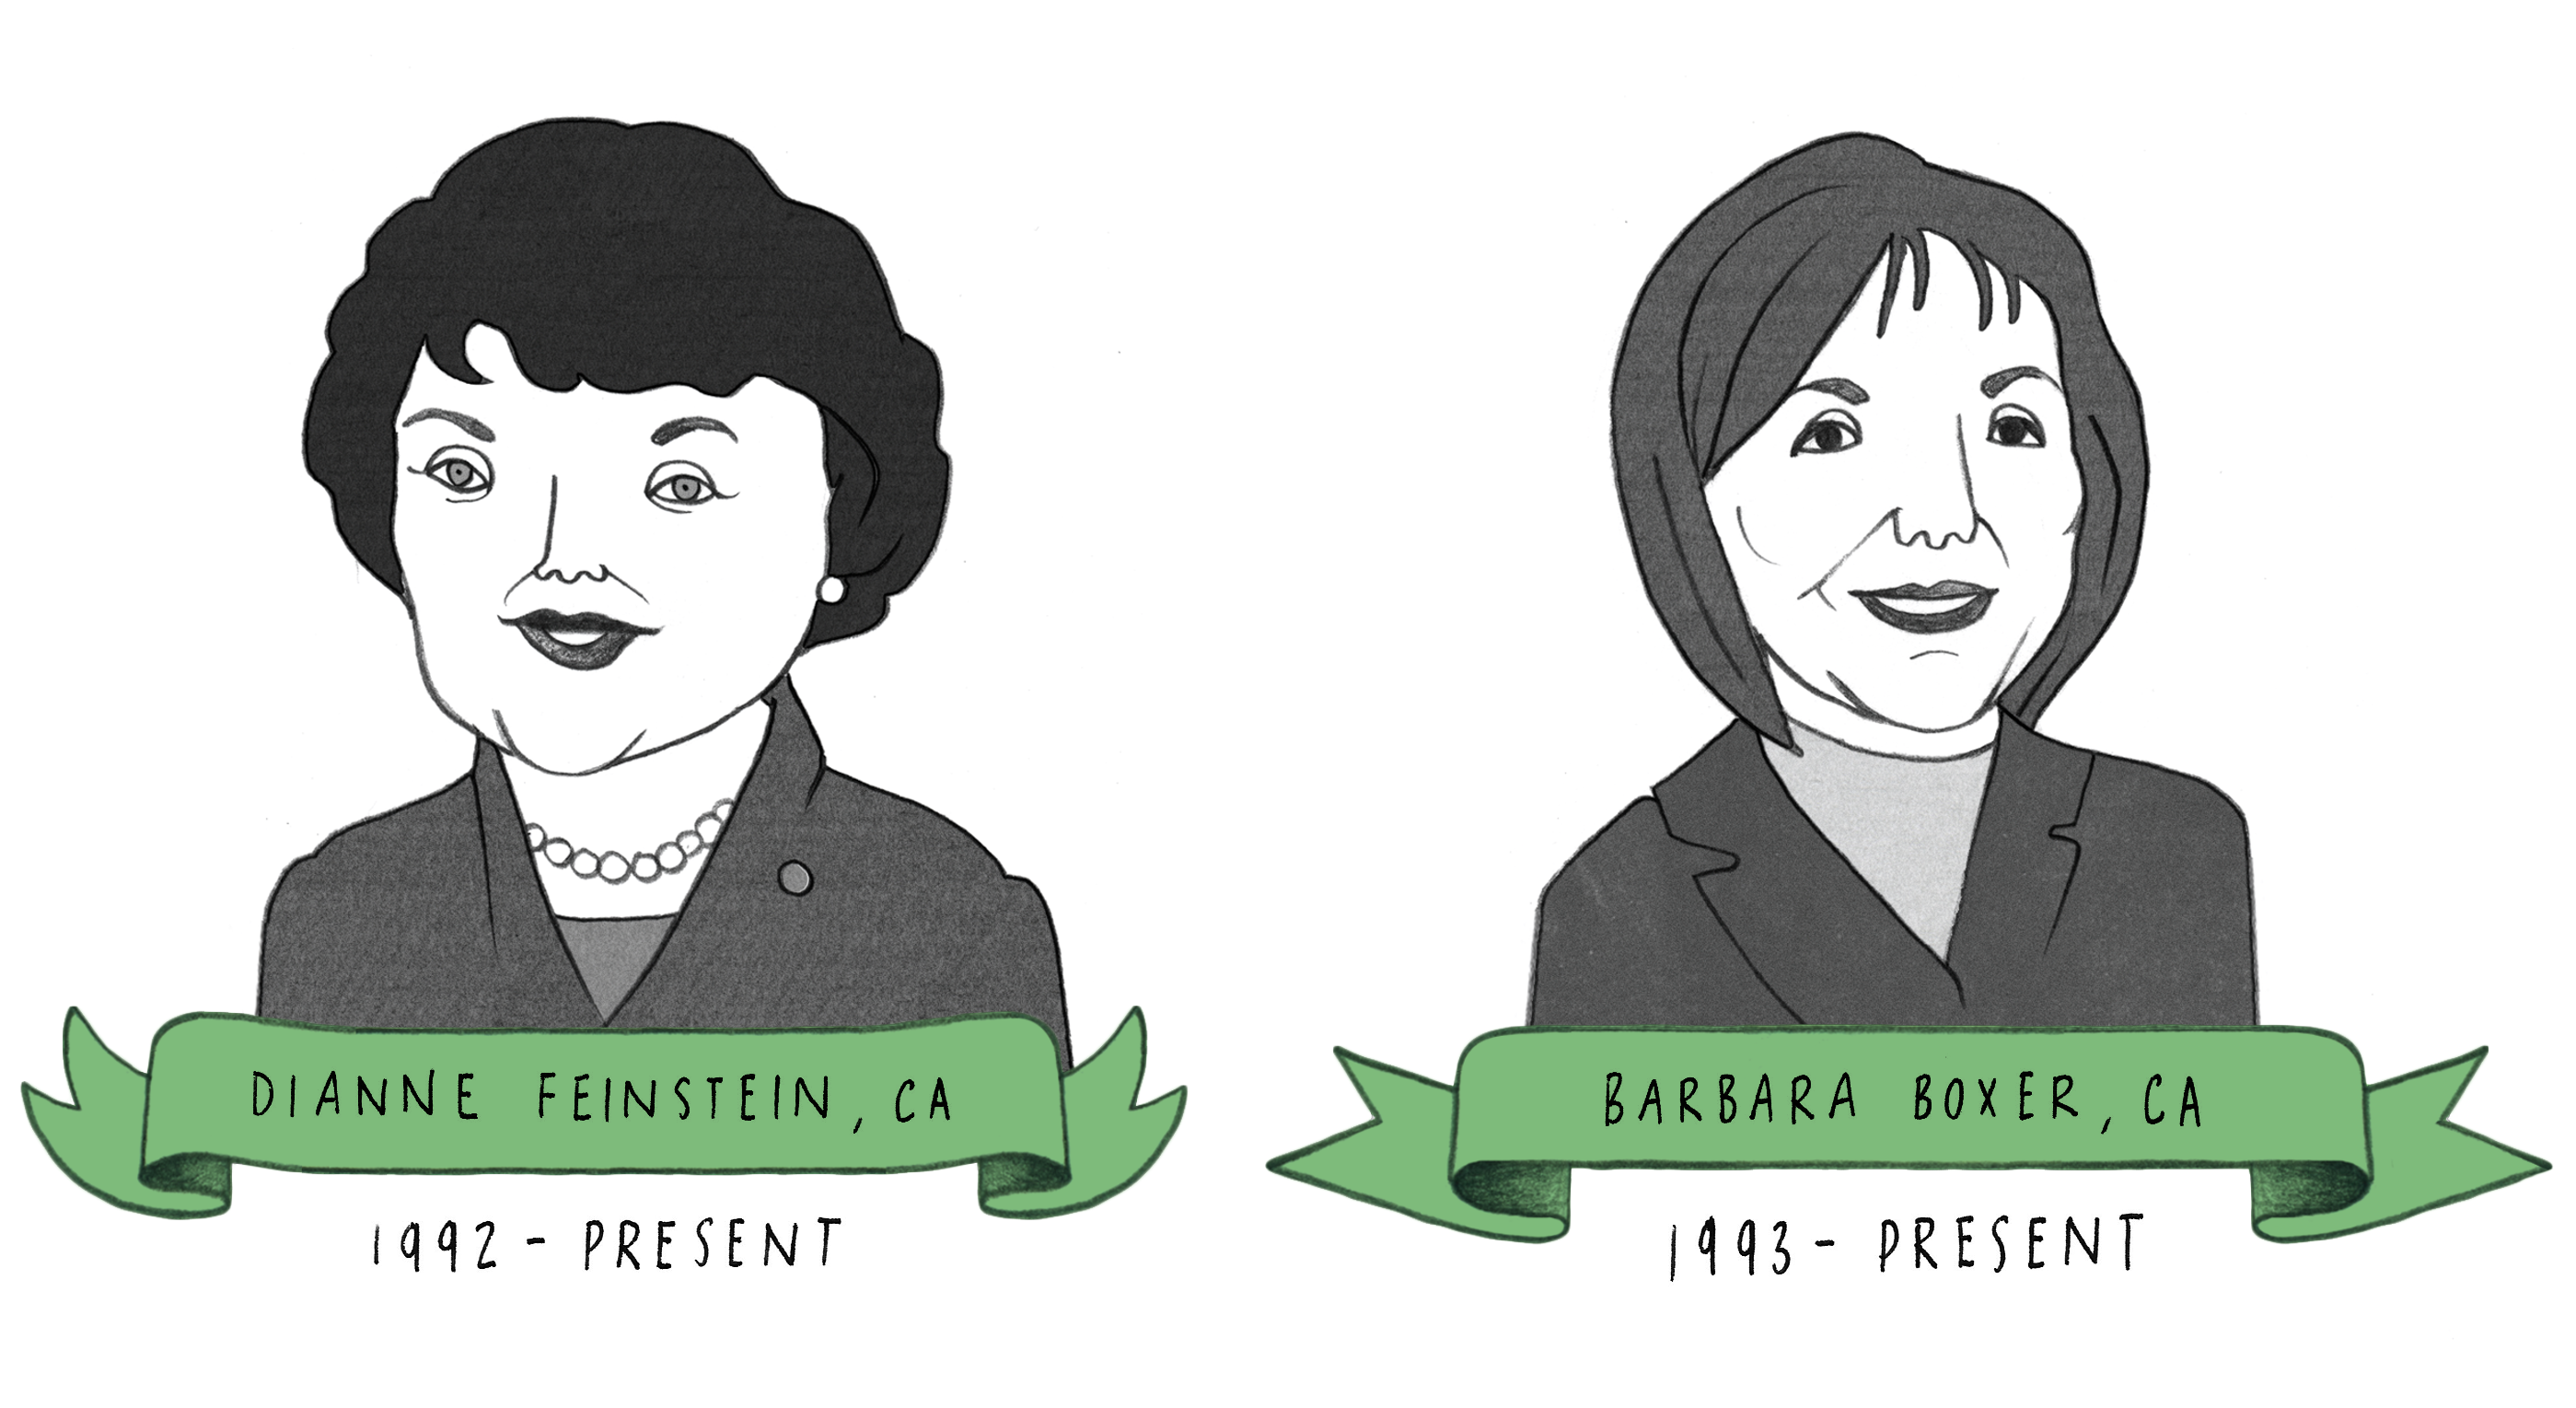 Illustrations from the poster of Dianne Feinstein and Barbara Boxer of California.